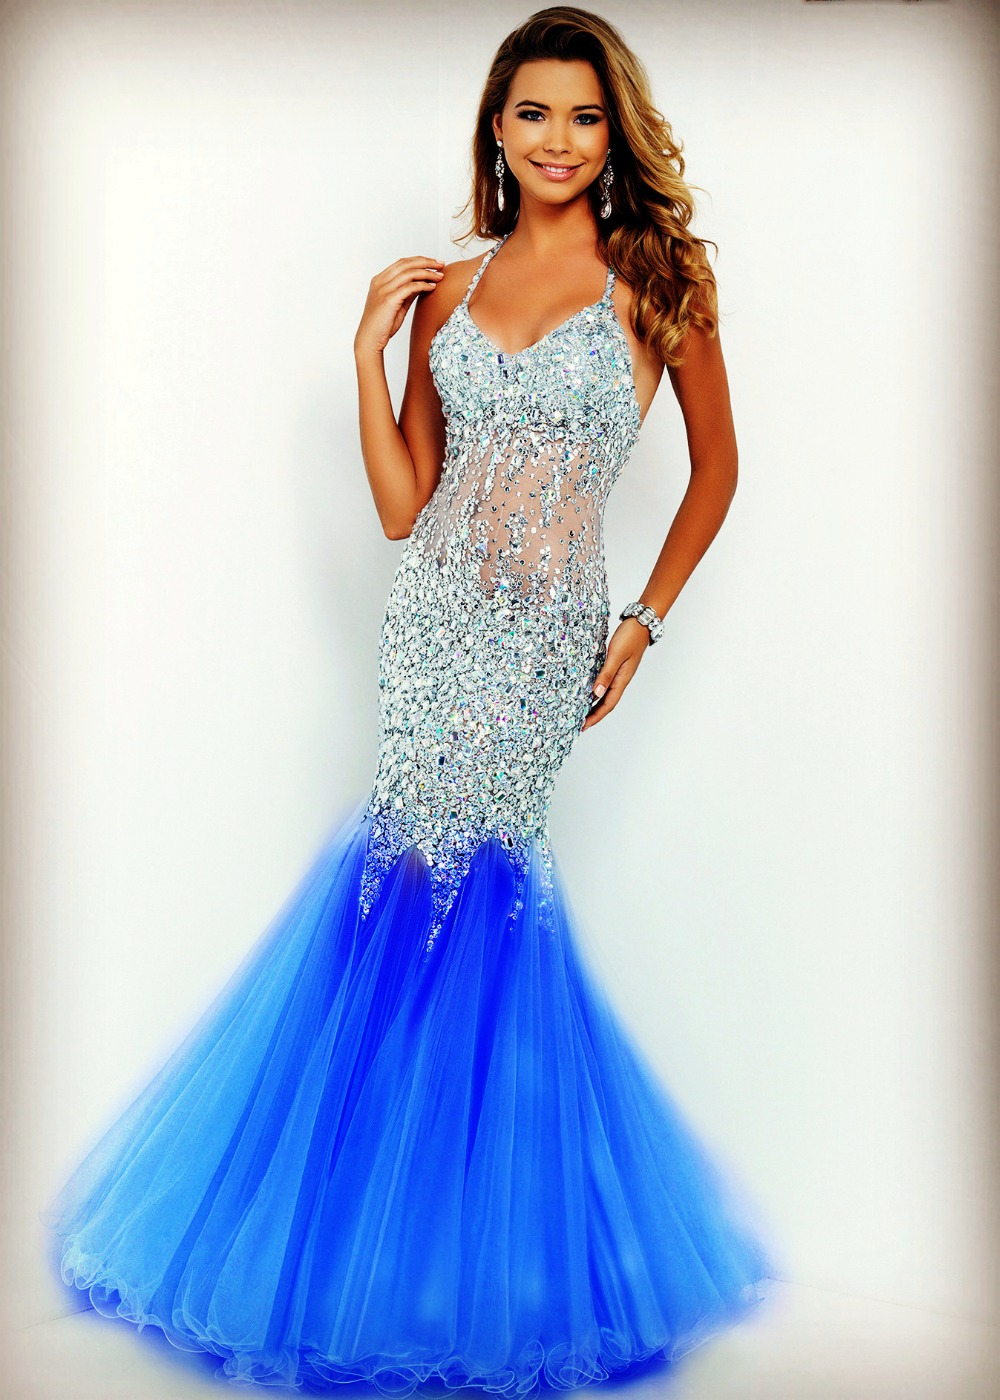 Fast Shipping In Stock Sexy Prom Gowns Backless Sweetheart Handmade Beading Crystal Blue Tulle Mermaid Evening Dresses